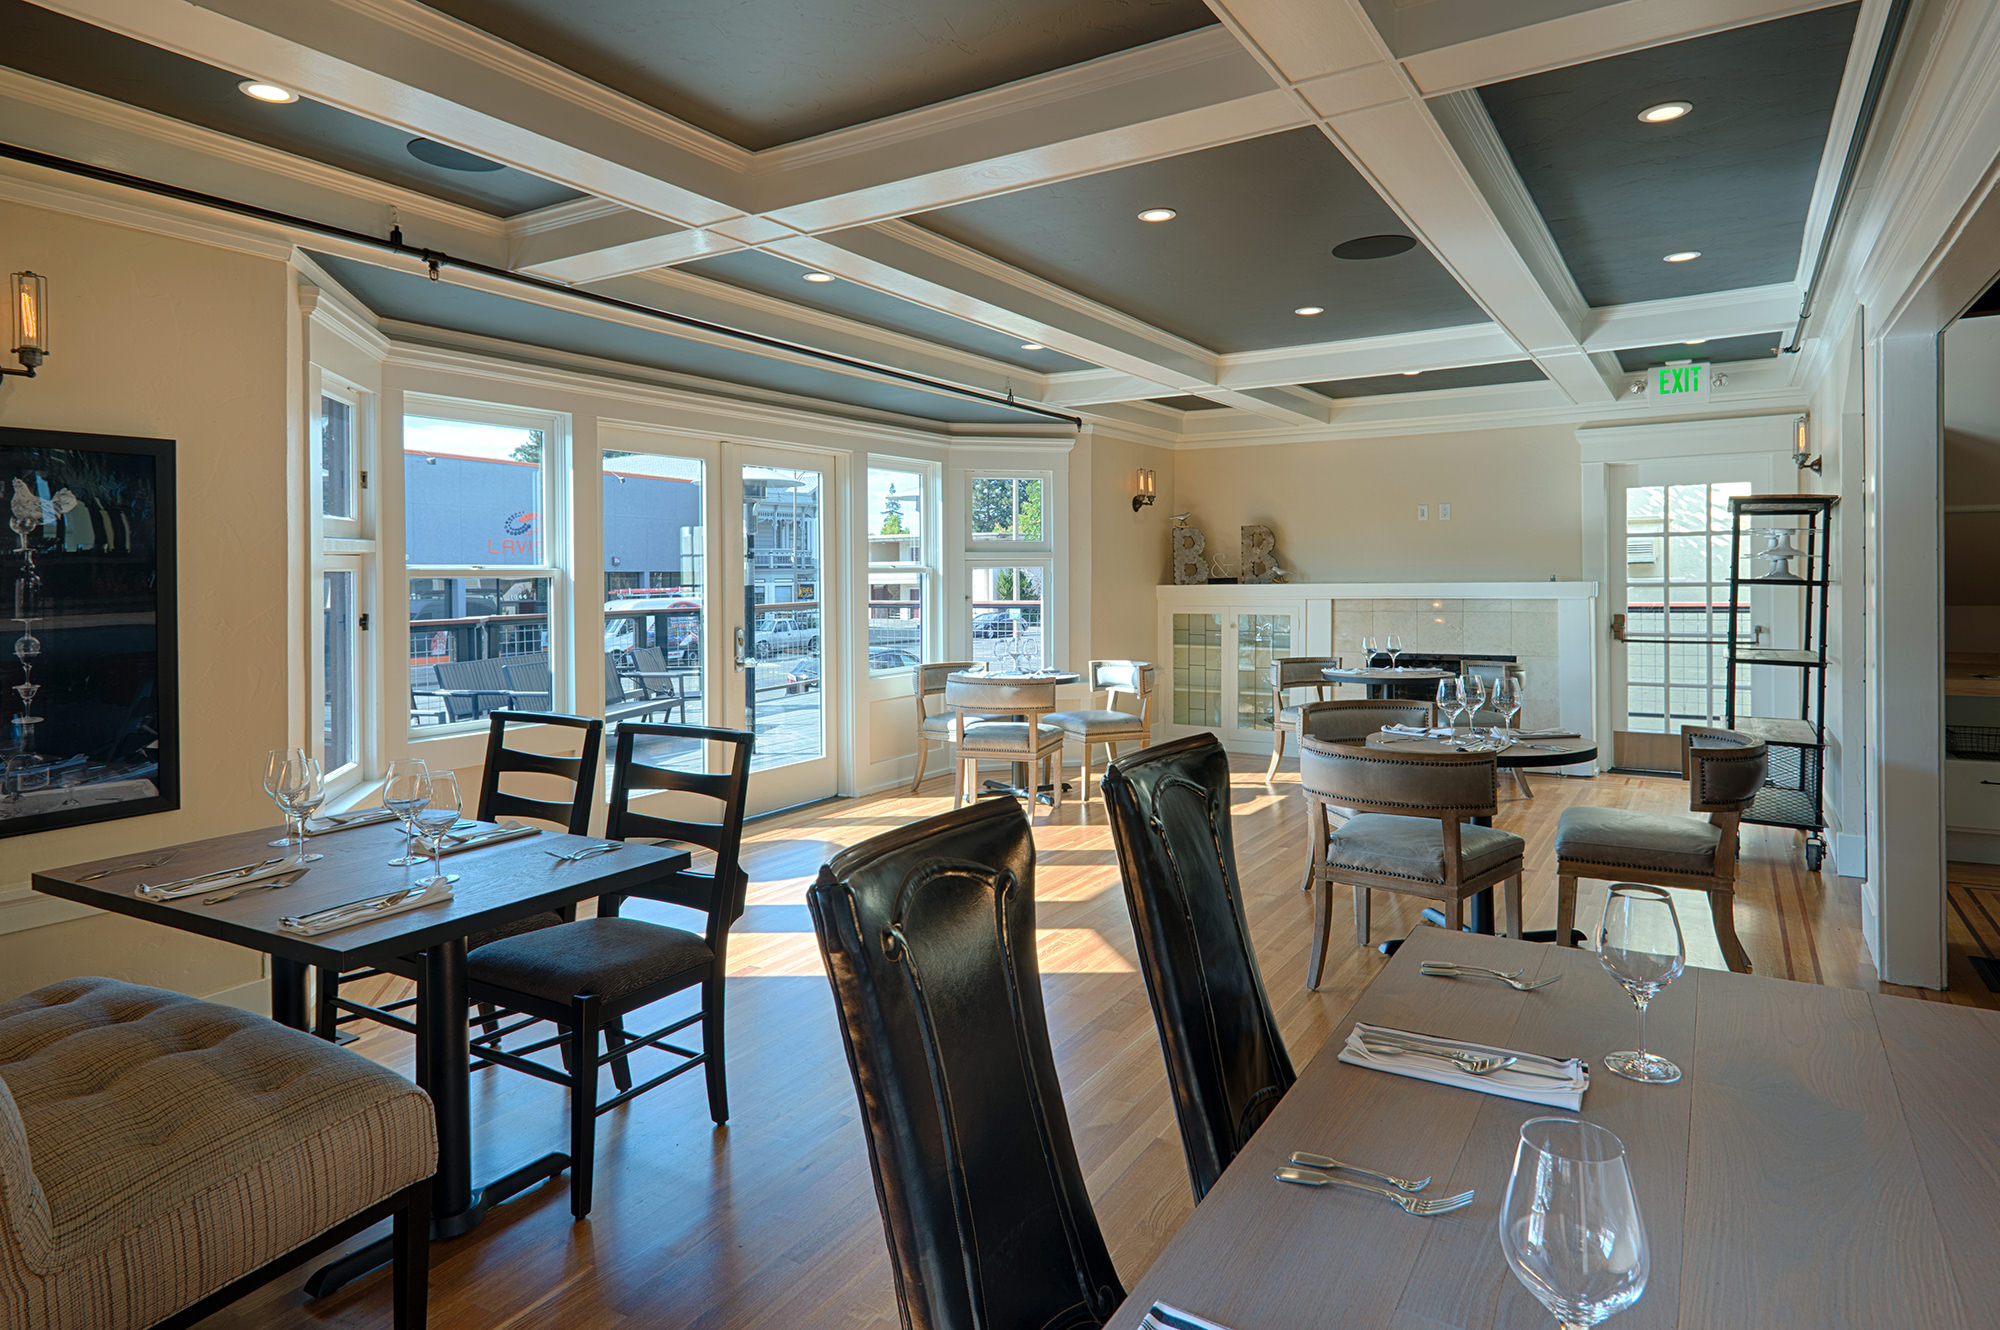 Bird & The Bottle Restaurant - a General Contractor Project in Santa Rosa, CA